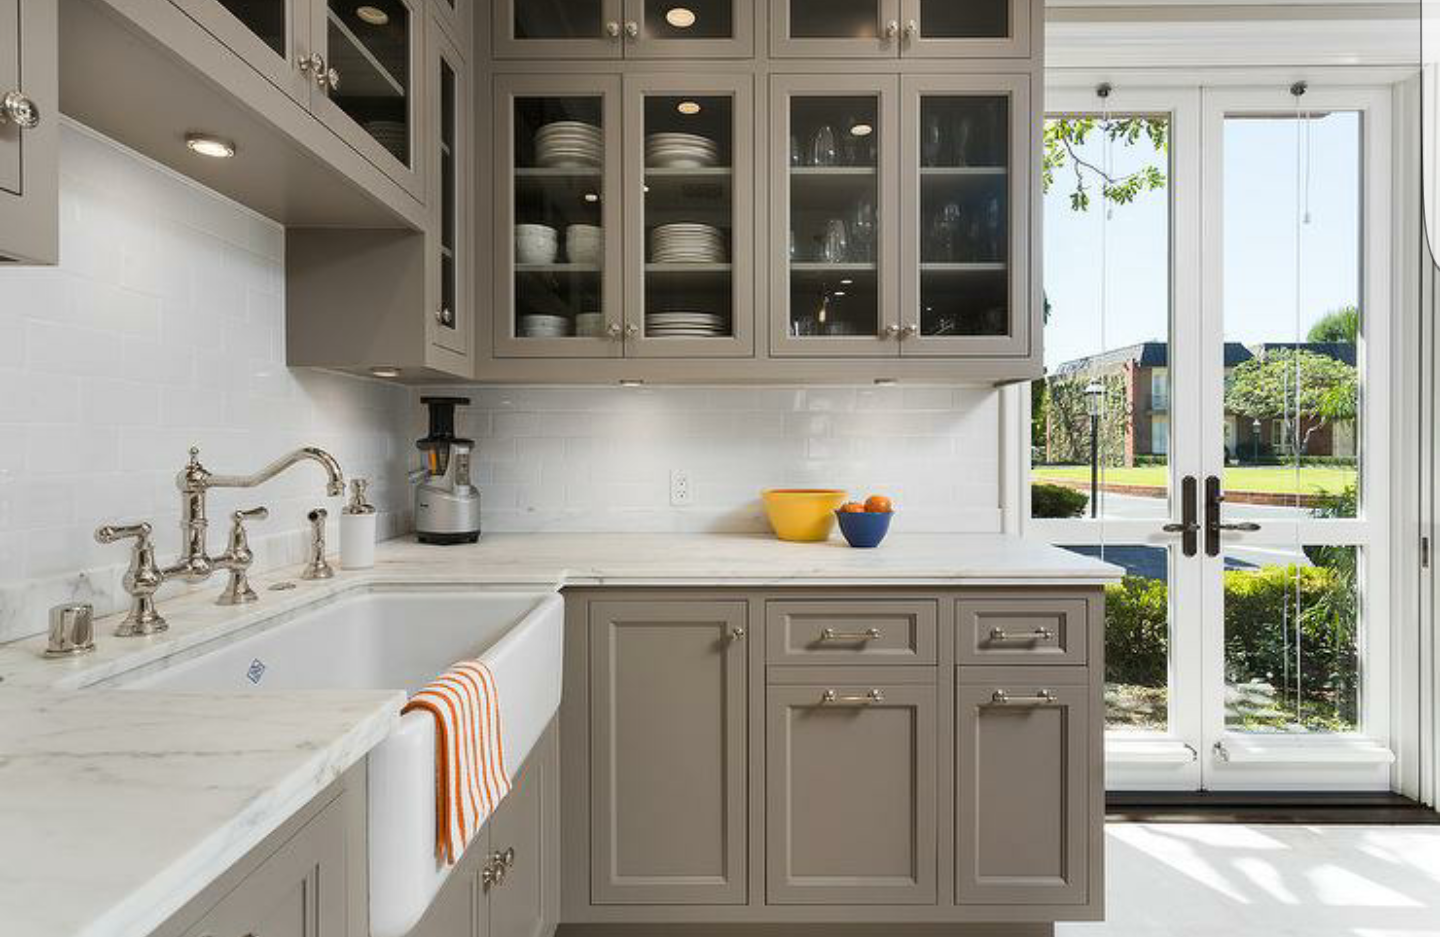 Ordinaire Painting Kitchen Cabinet Denver Colorado